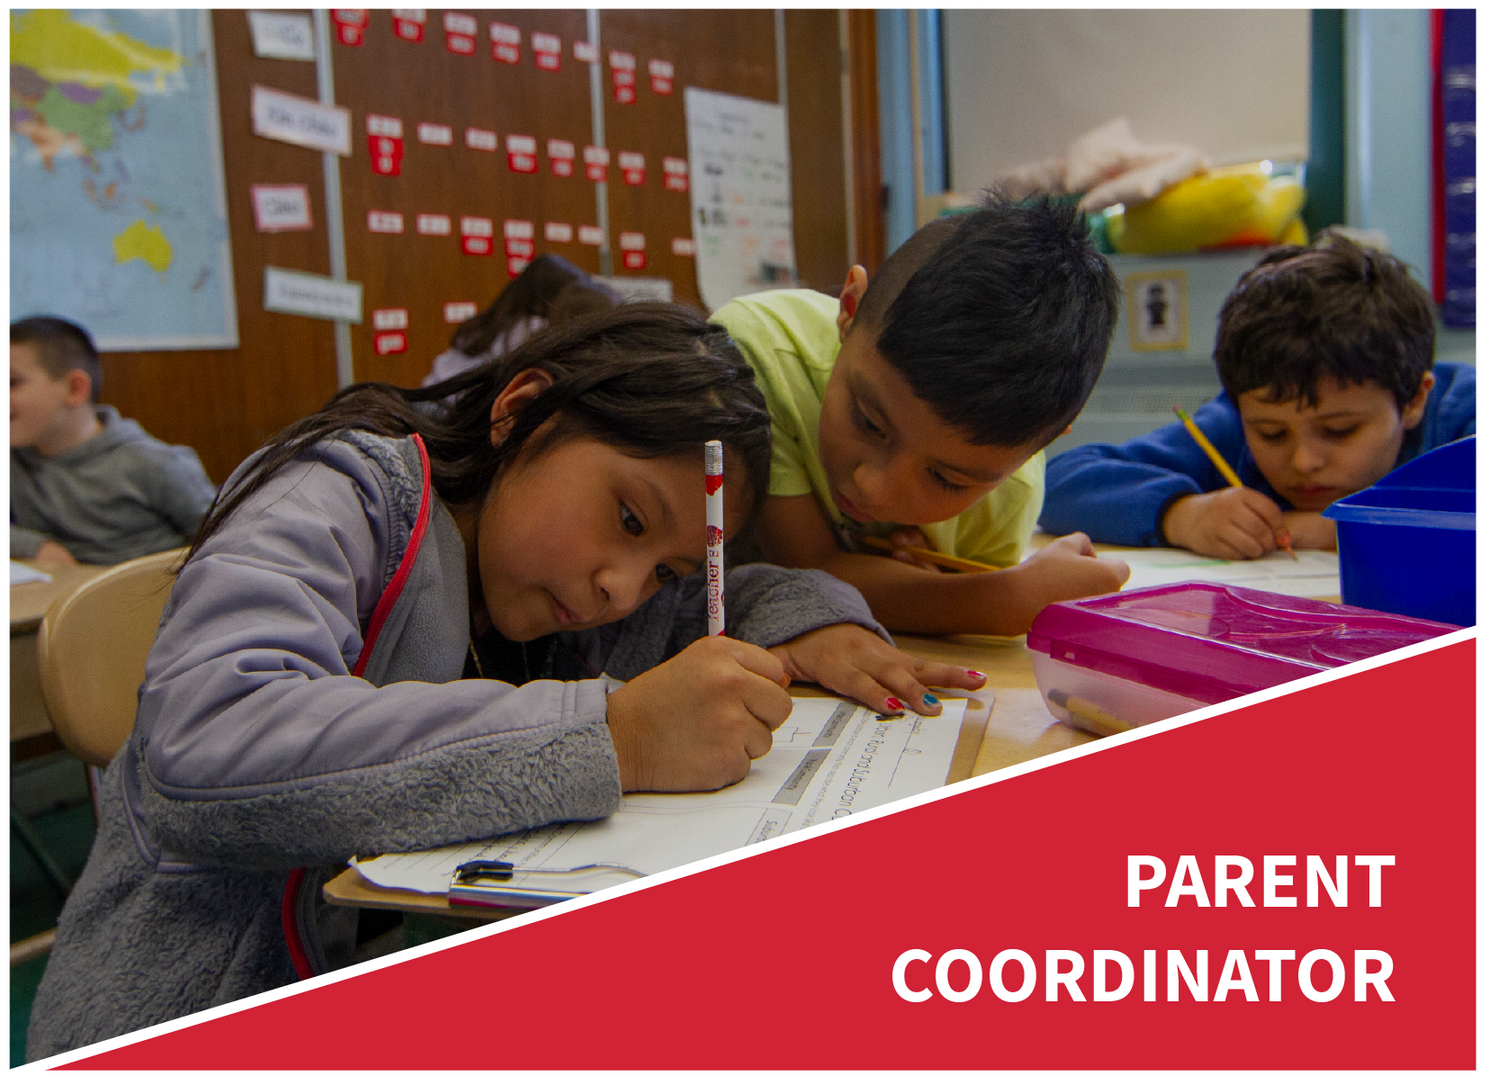 Parent Coordinator: students working together